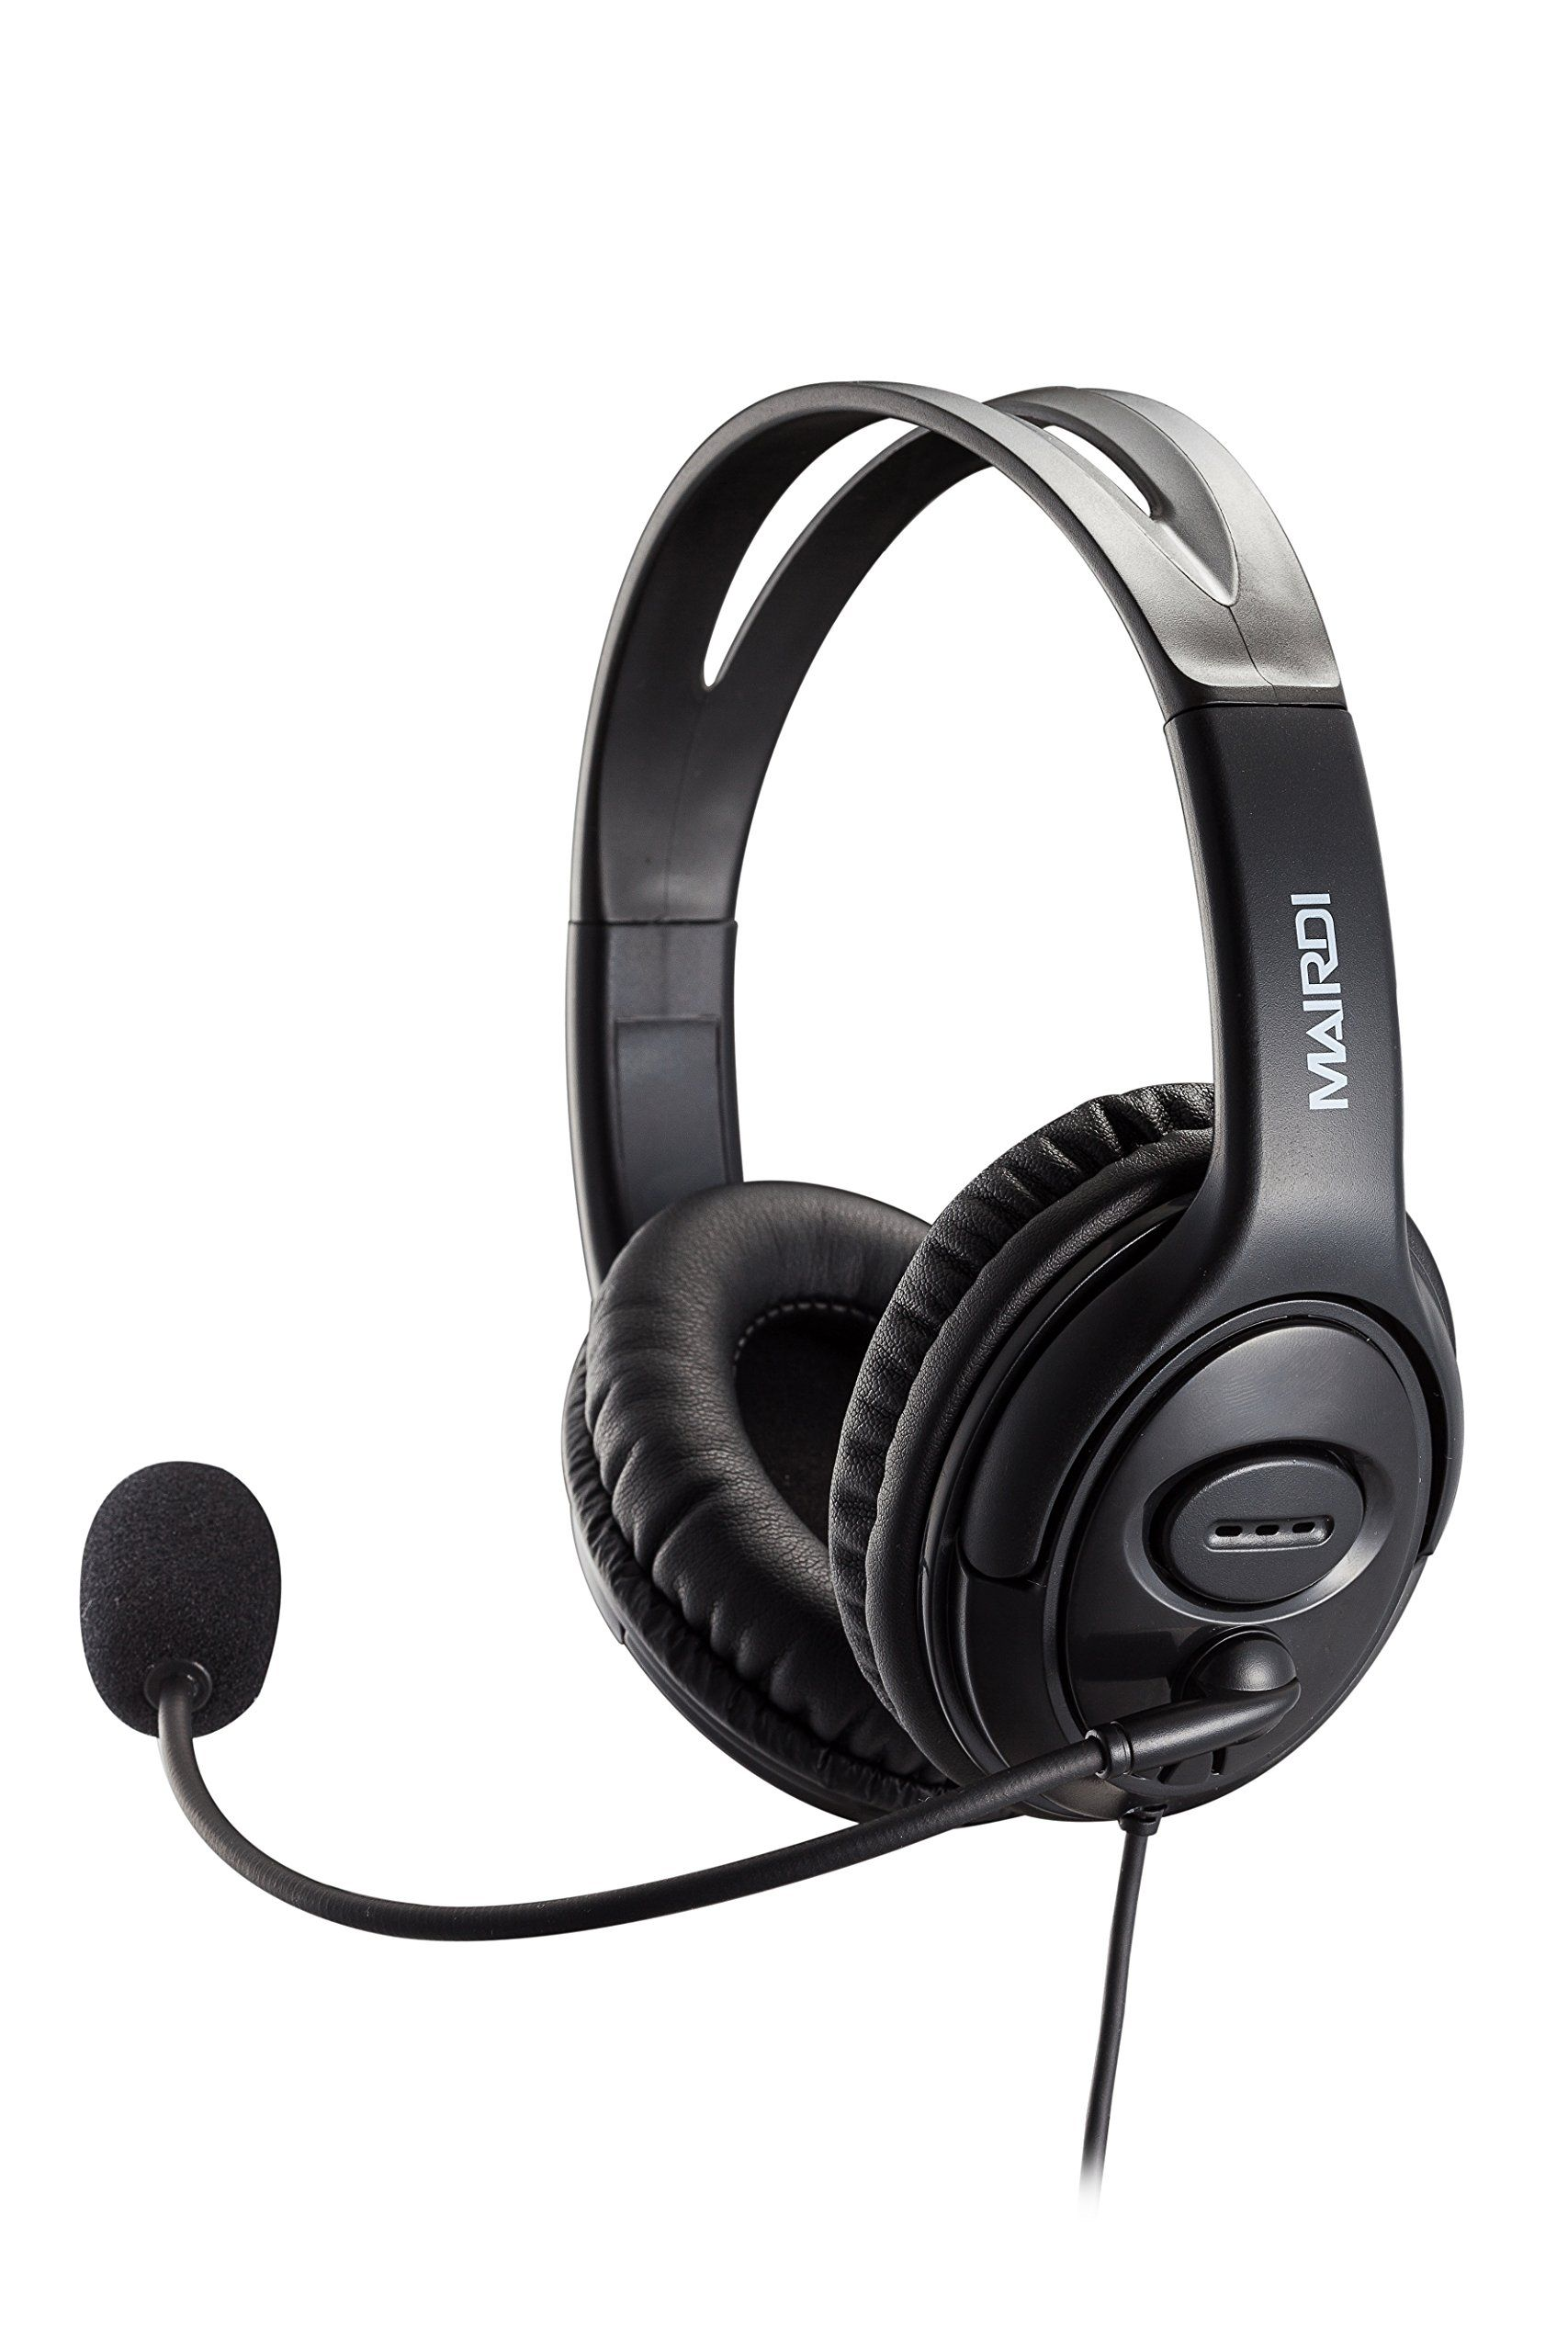 M806uc Binaural Usb Headset With Noise Cancelling Voice